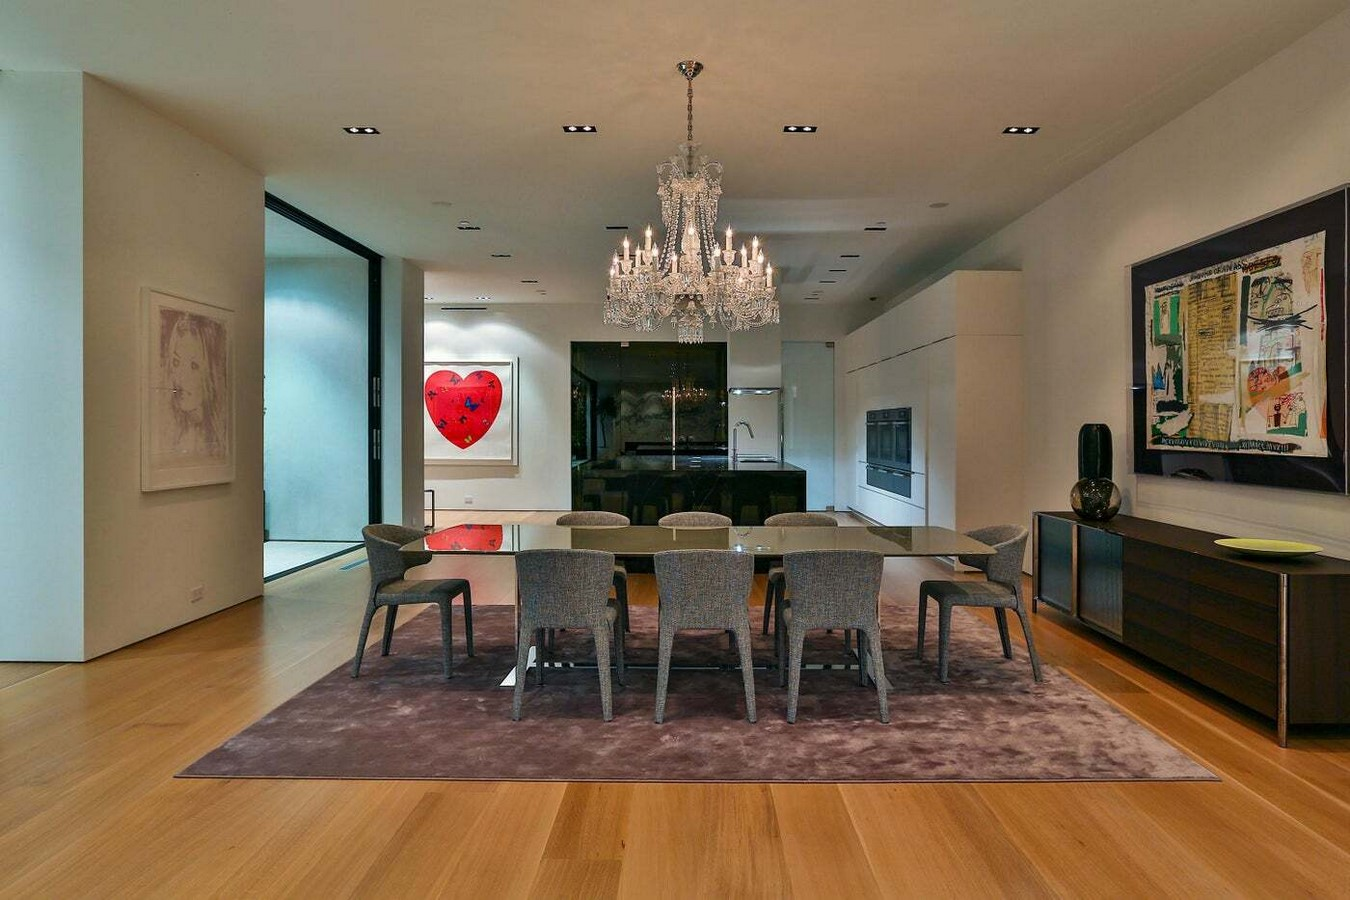 10 Dining rooms ideas that can enhance the space - Sheet3